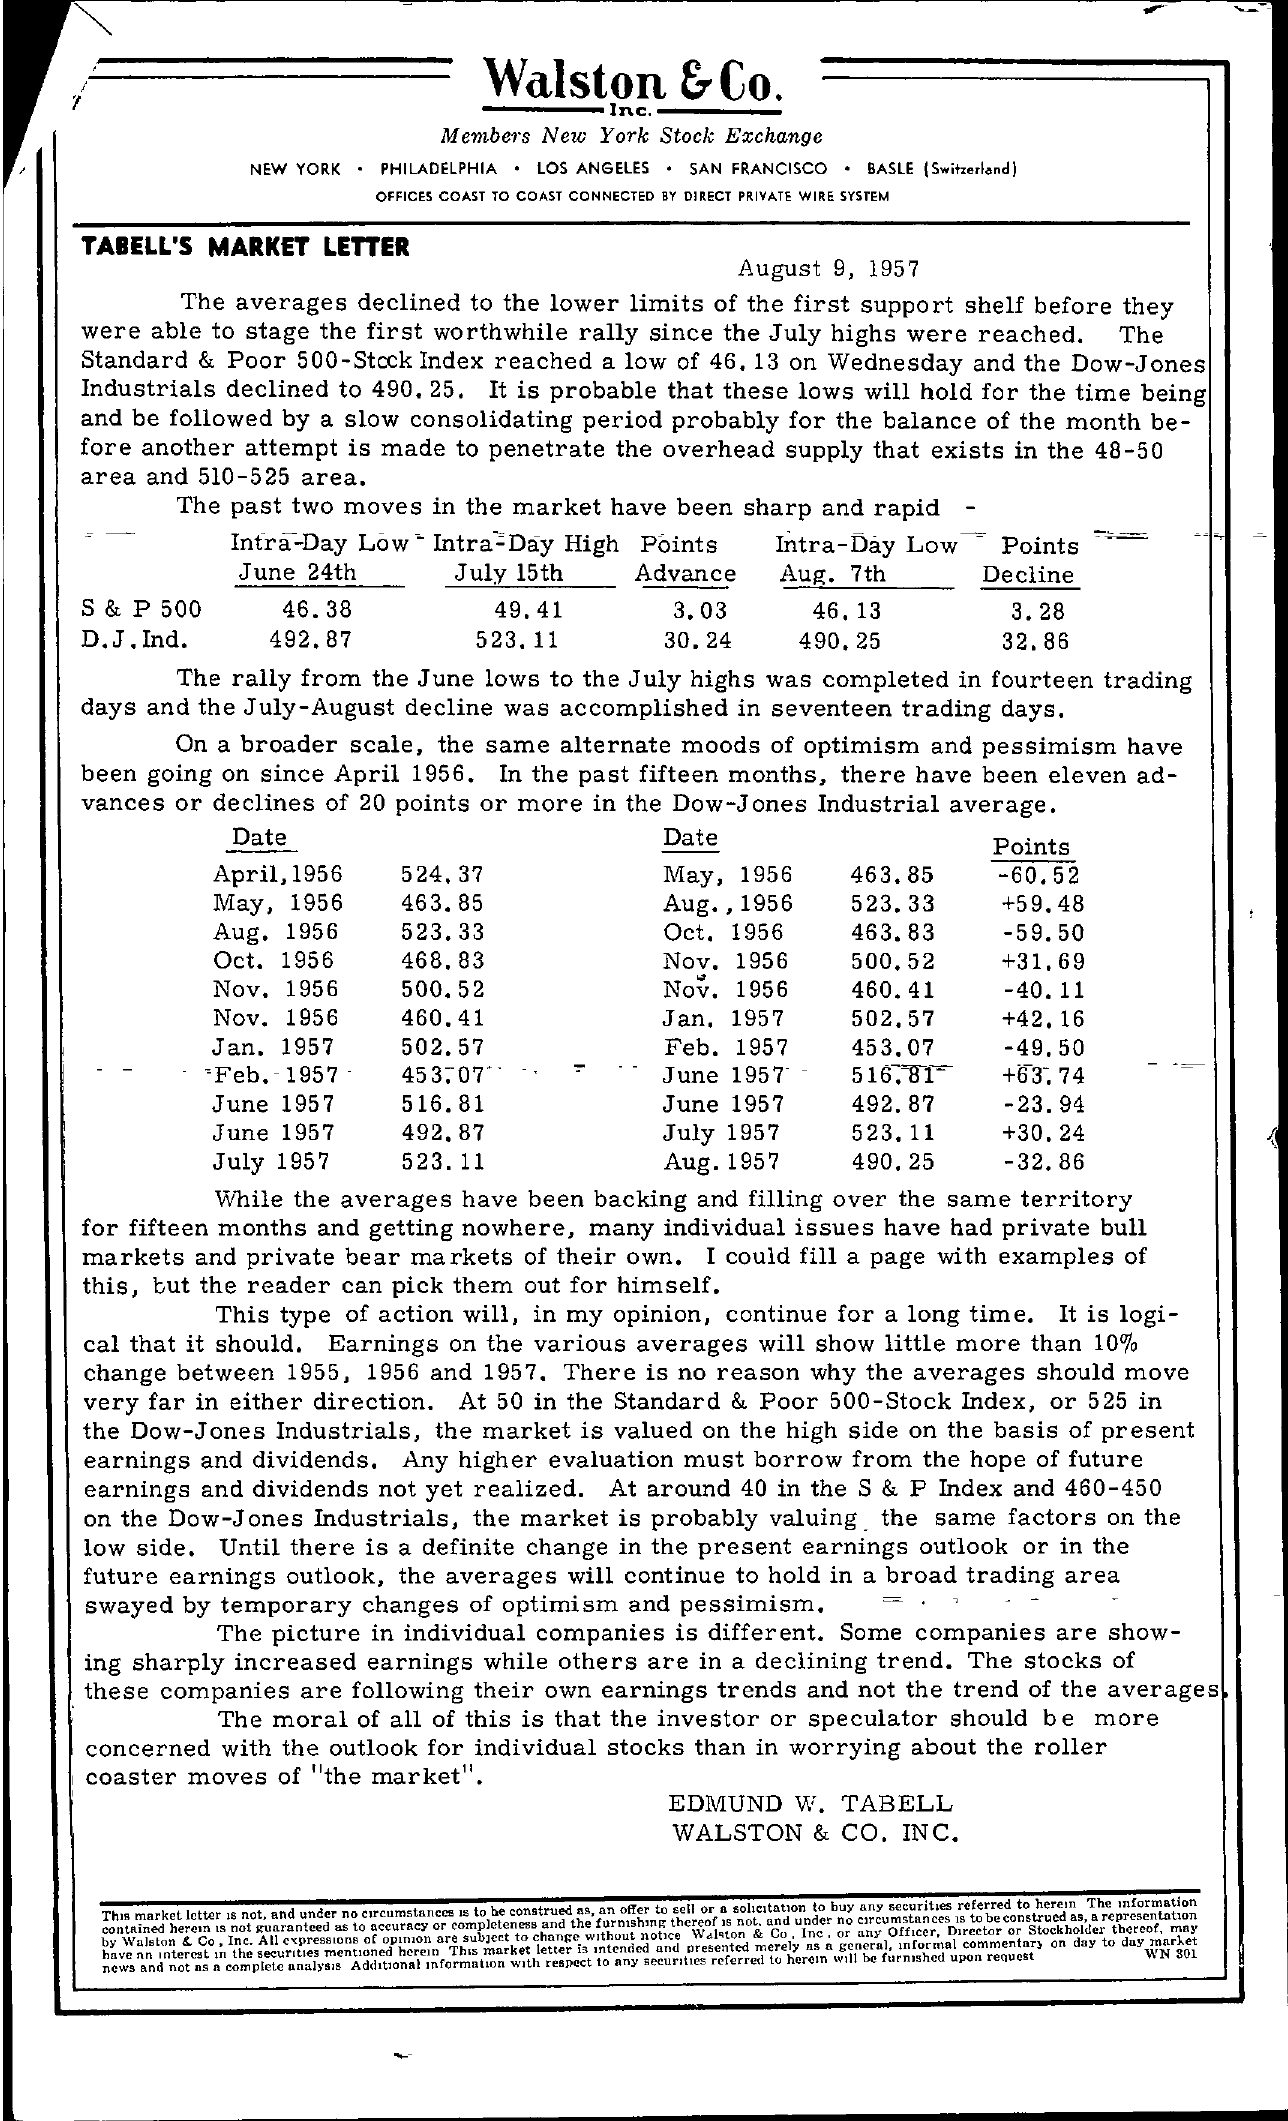 Tabell's Market Letter - August 09, 1957